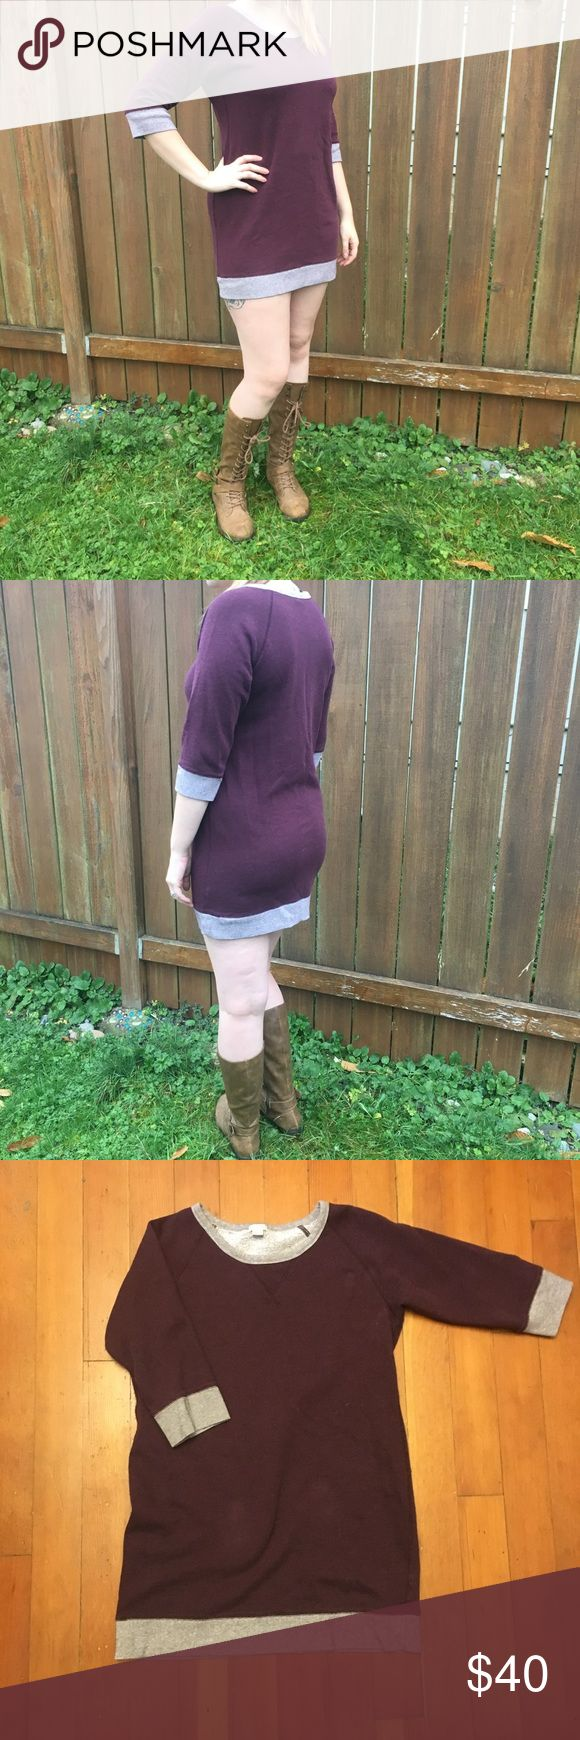 J Crew Sweater Dress Cute maroon sweater dress perfect for any fall/winter ensemble! Pair with leggings or not and some cute boots for that autumn feel 😍 J. Crew Dresses